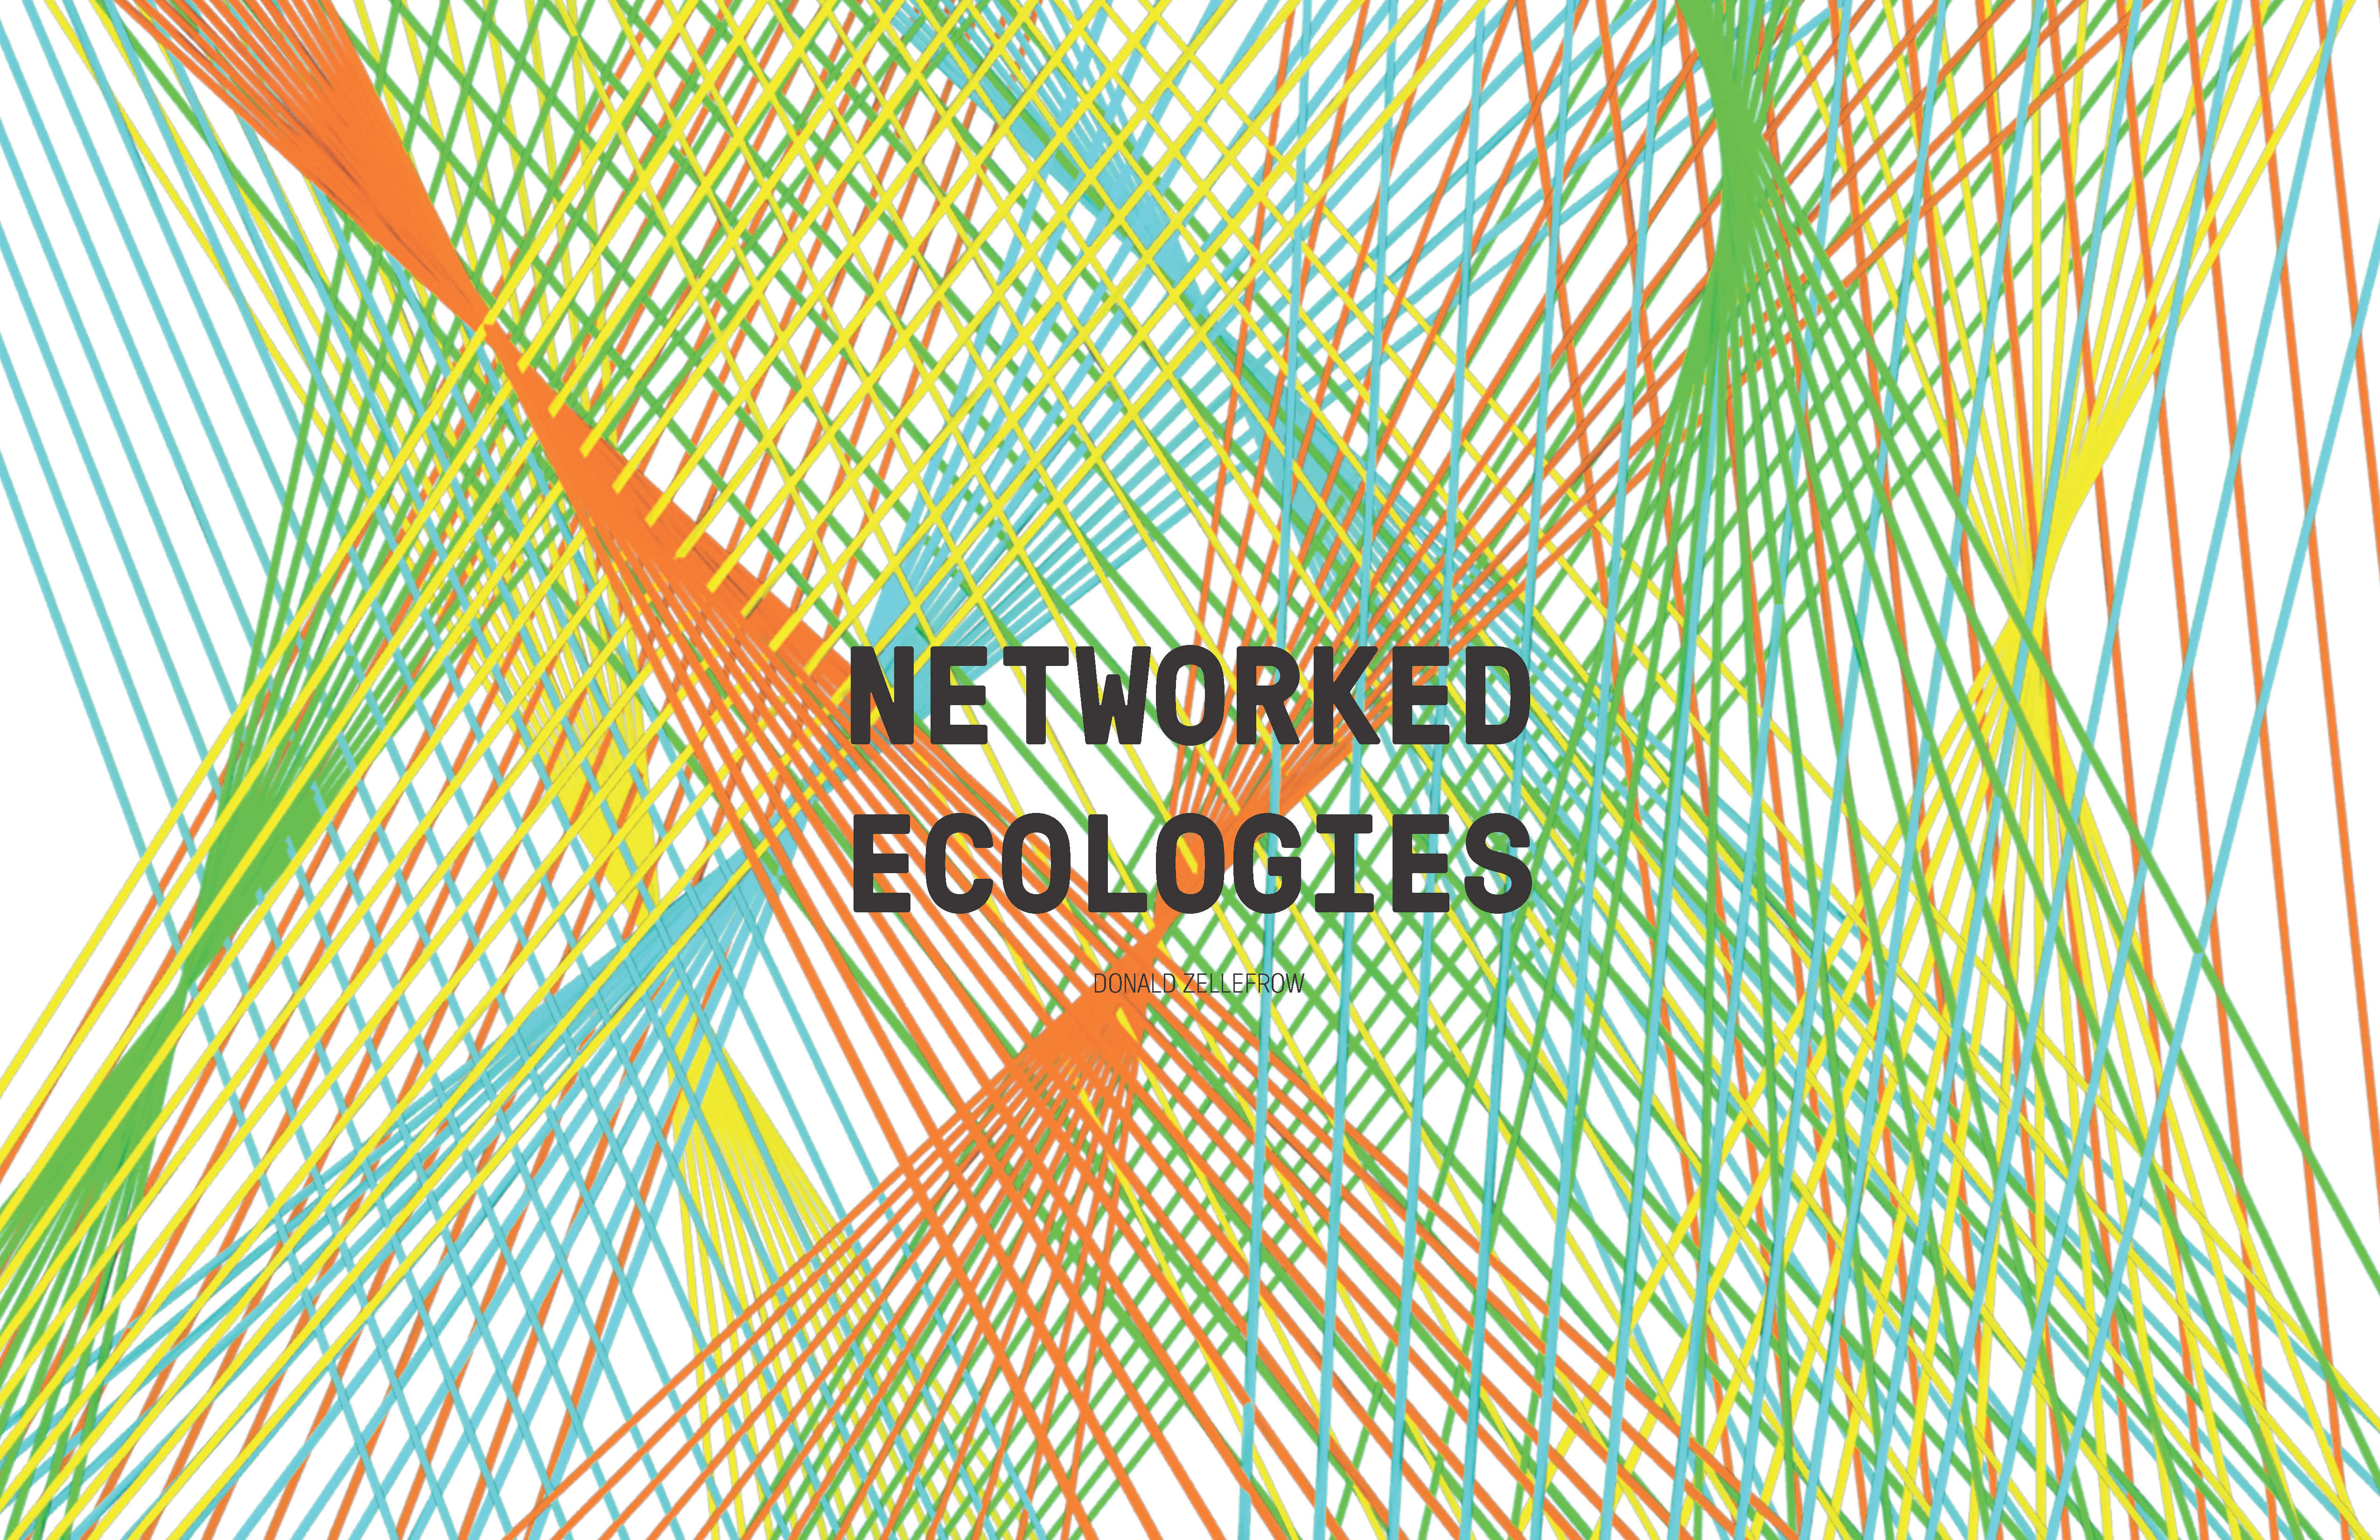 Networked Ecologies_Donald Zellefrow_Page_1